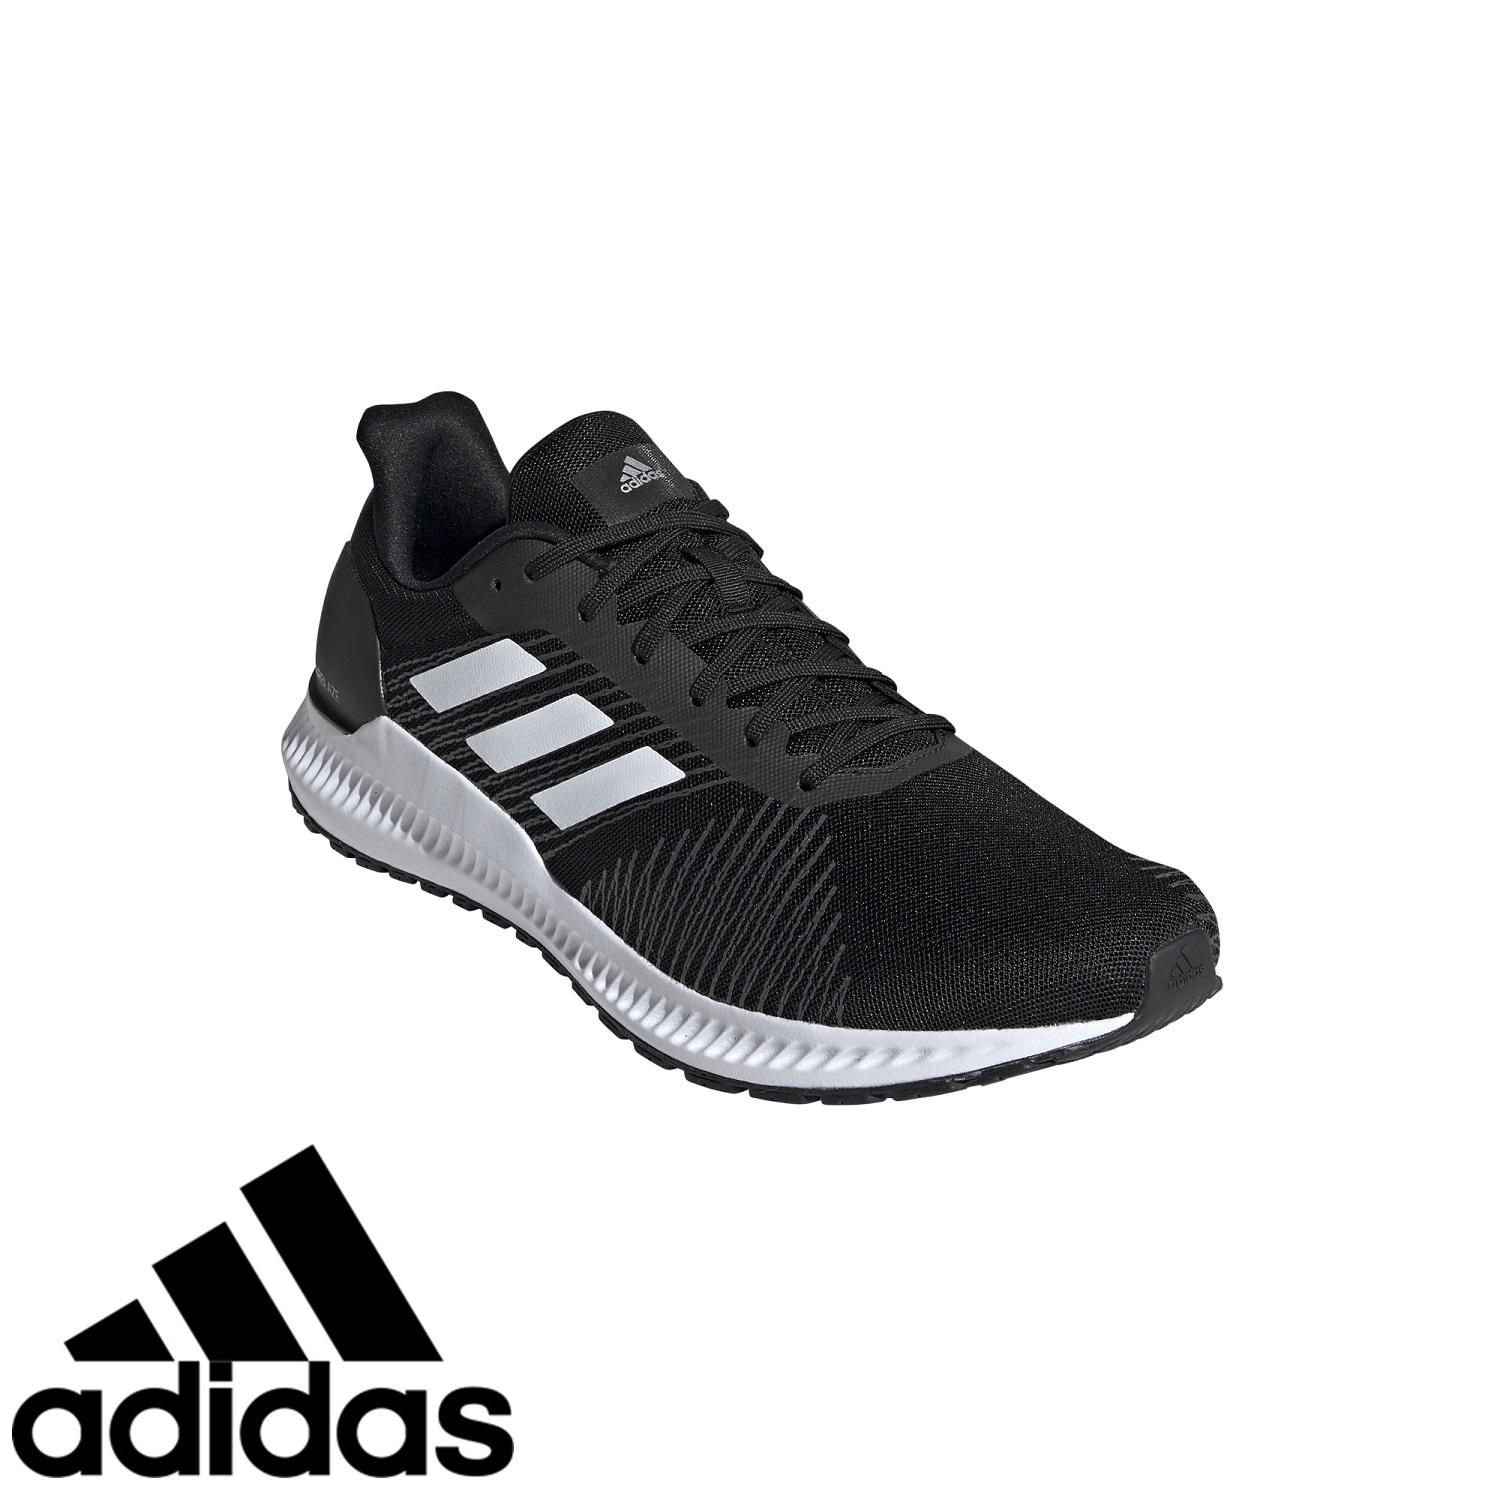 fdff134a0 Running Shoes for Men for sale - Mens Running Shoes online brands ...